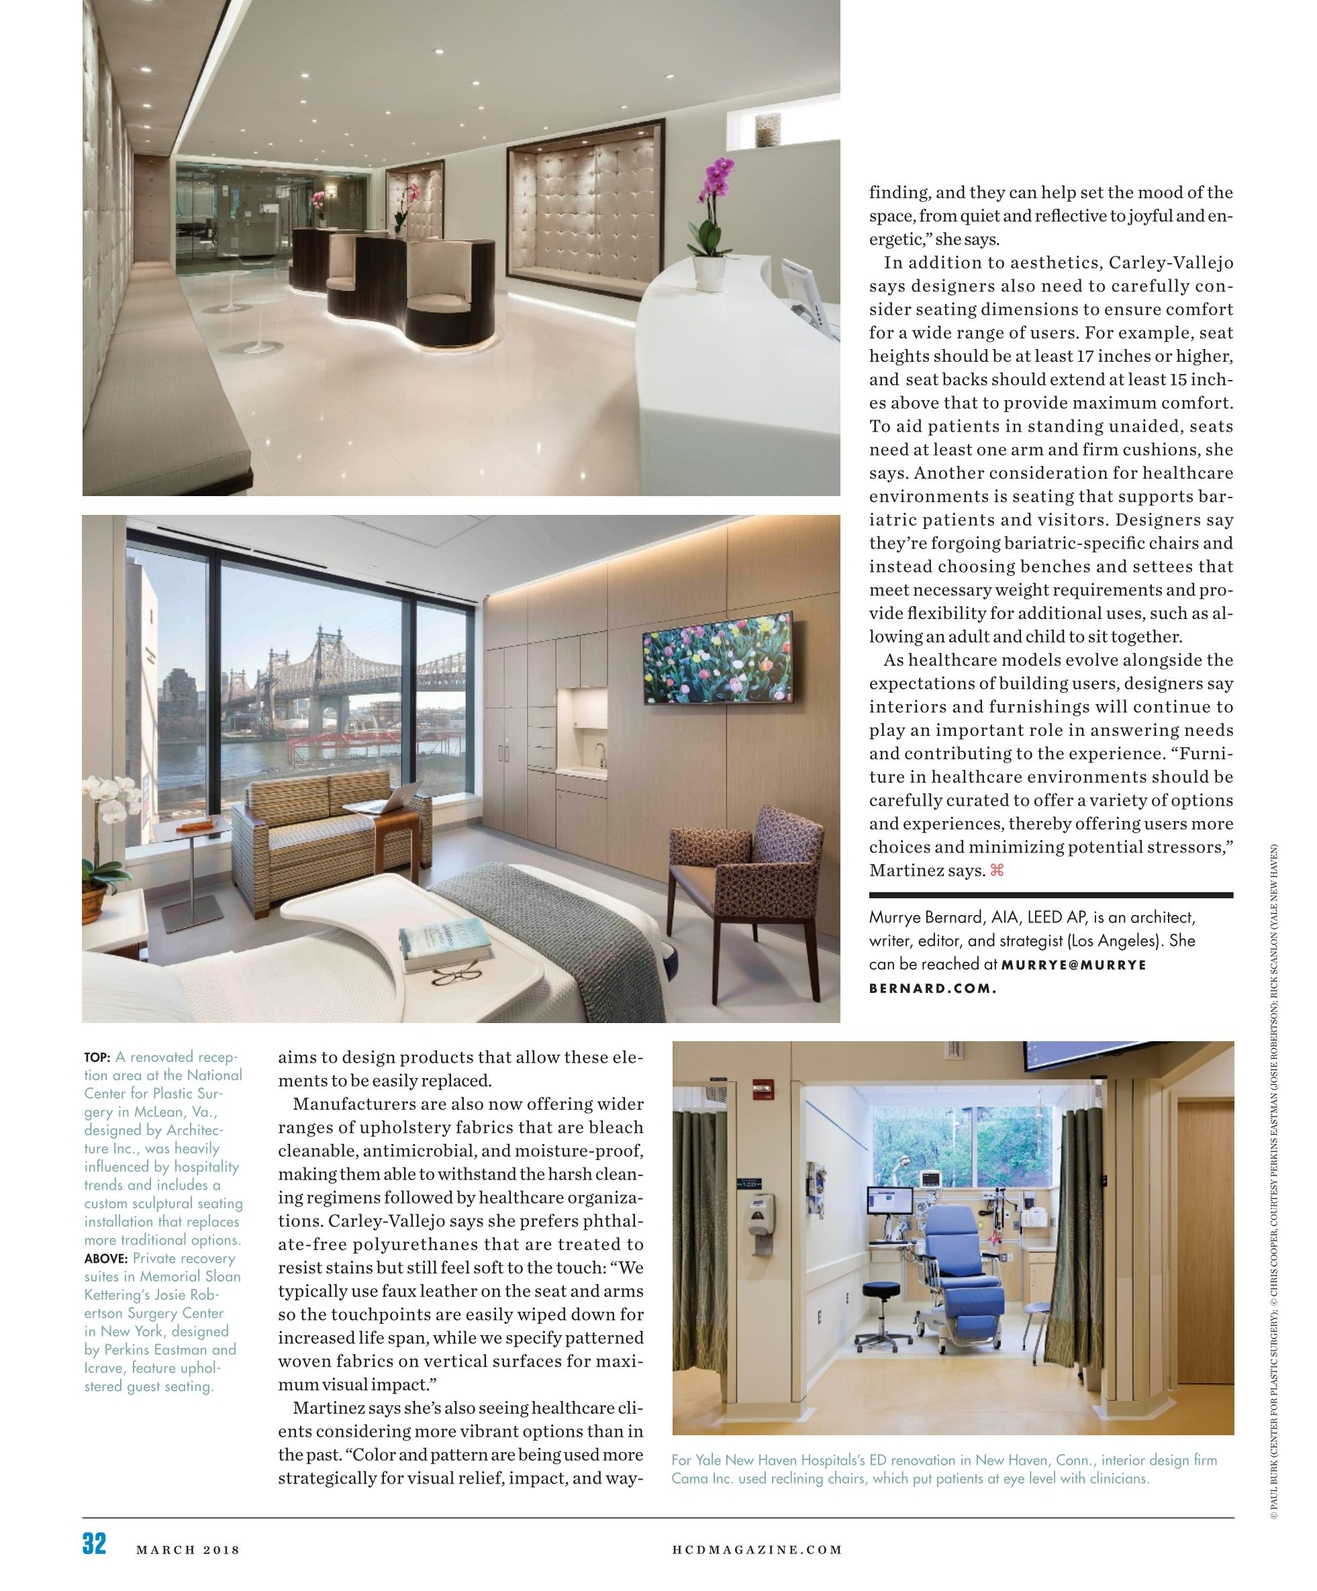 Healthcare Design - March 2018